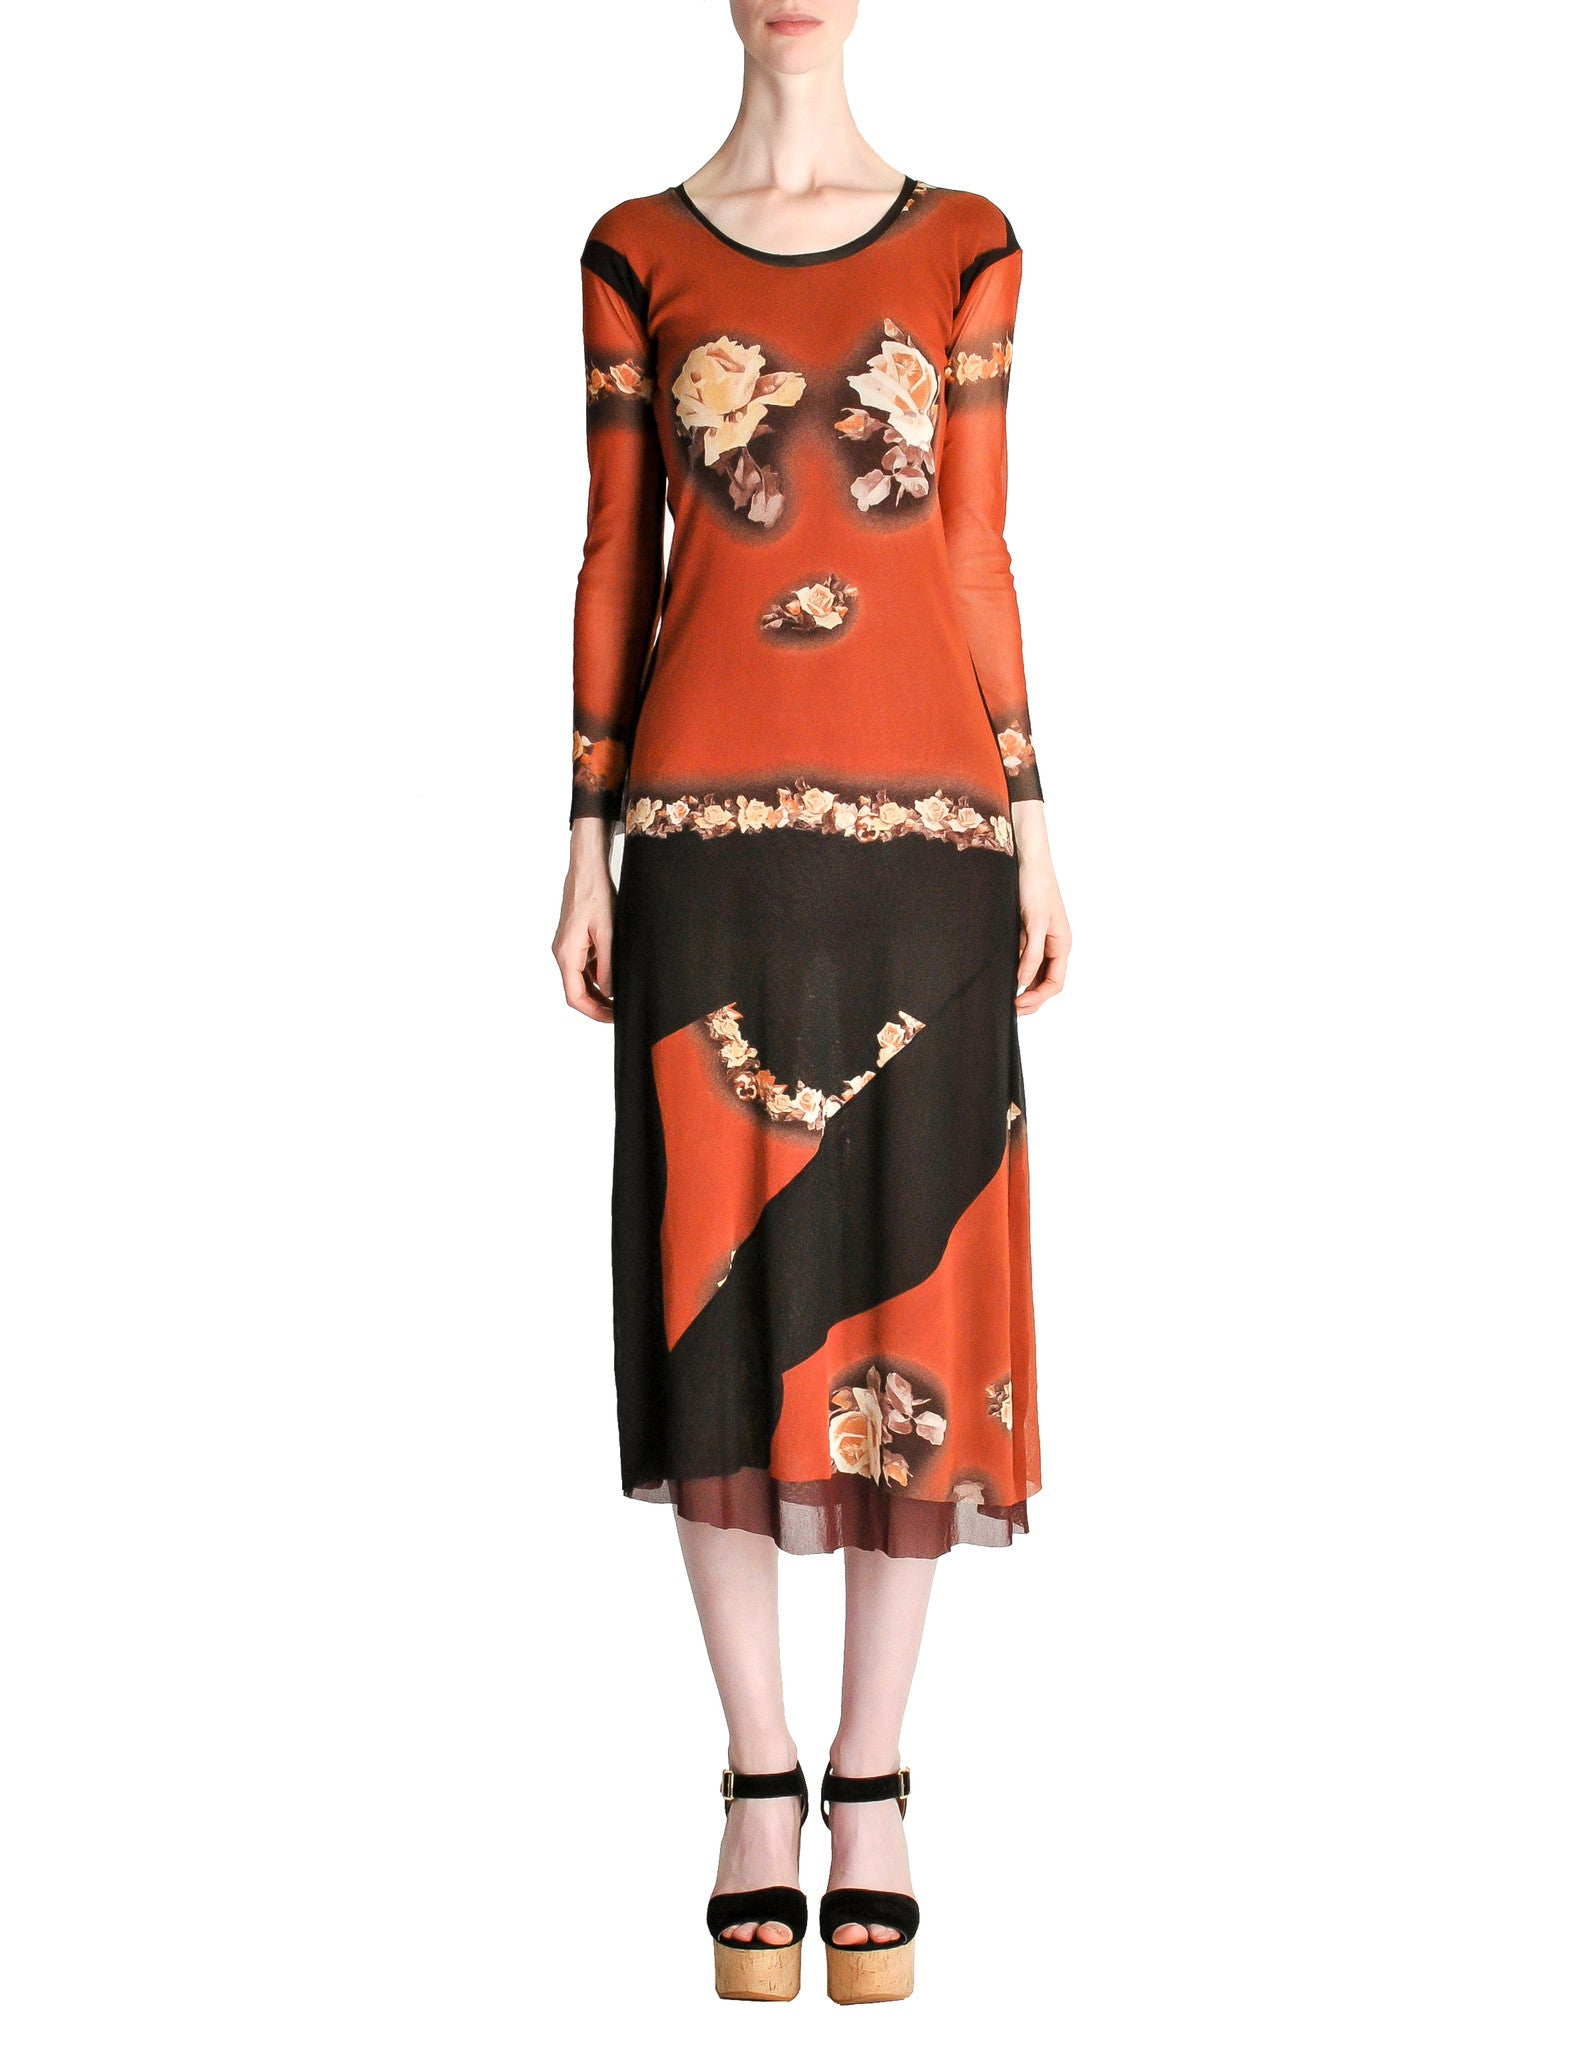 Jean Paul Gaultier Vintage Black & Rust Floral Mesh Dress - Amarcord Vintage Fashion  - 1